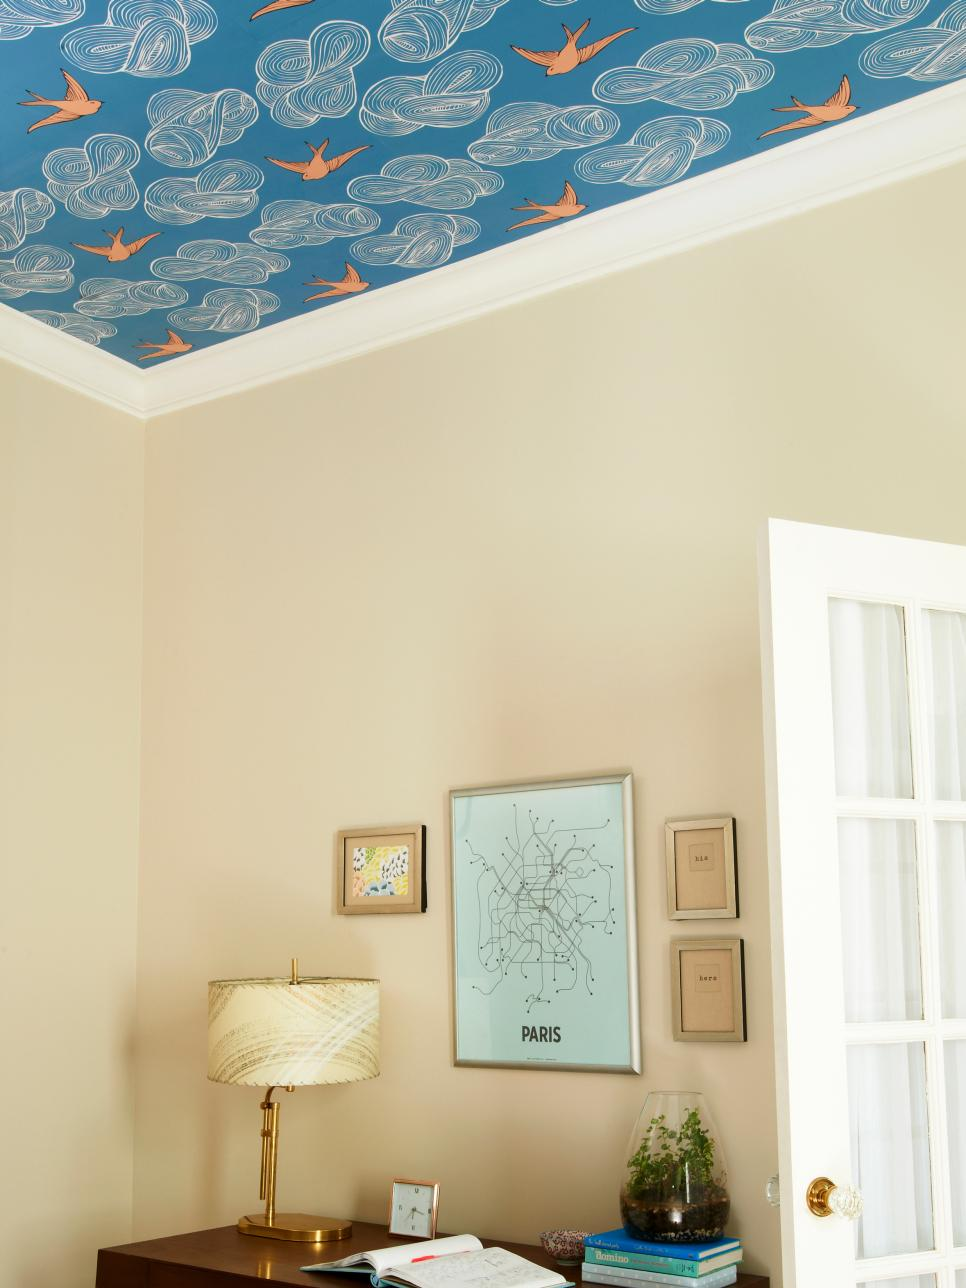 http://www.hgtv.com/remodel/interior-remodel/how-to-wallpaper-a-ceiling-pictures